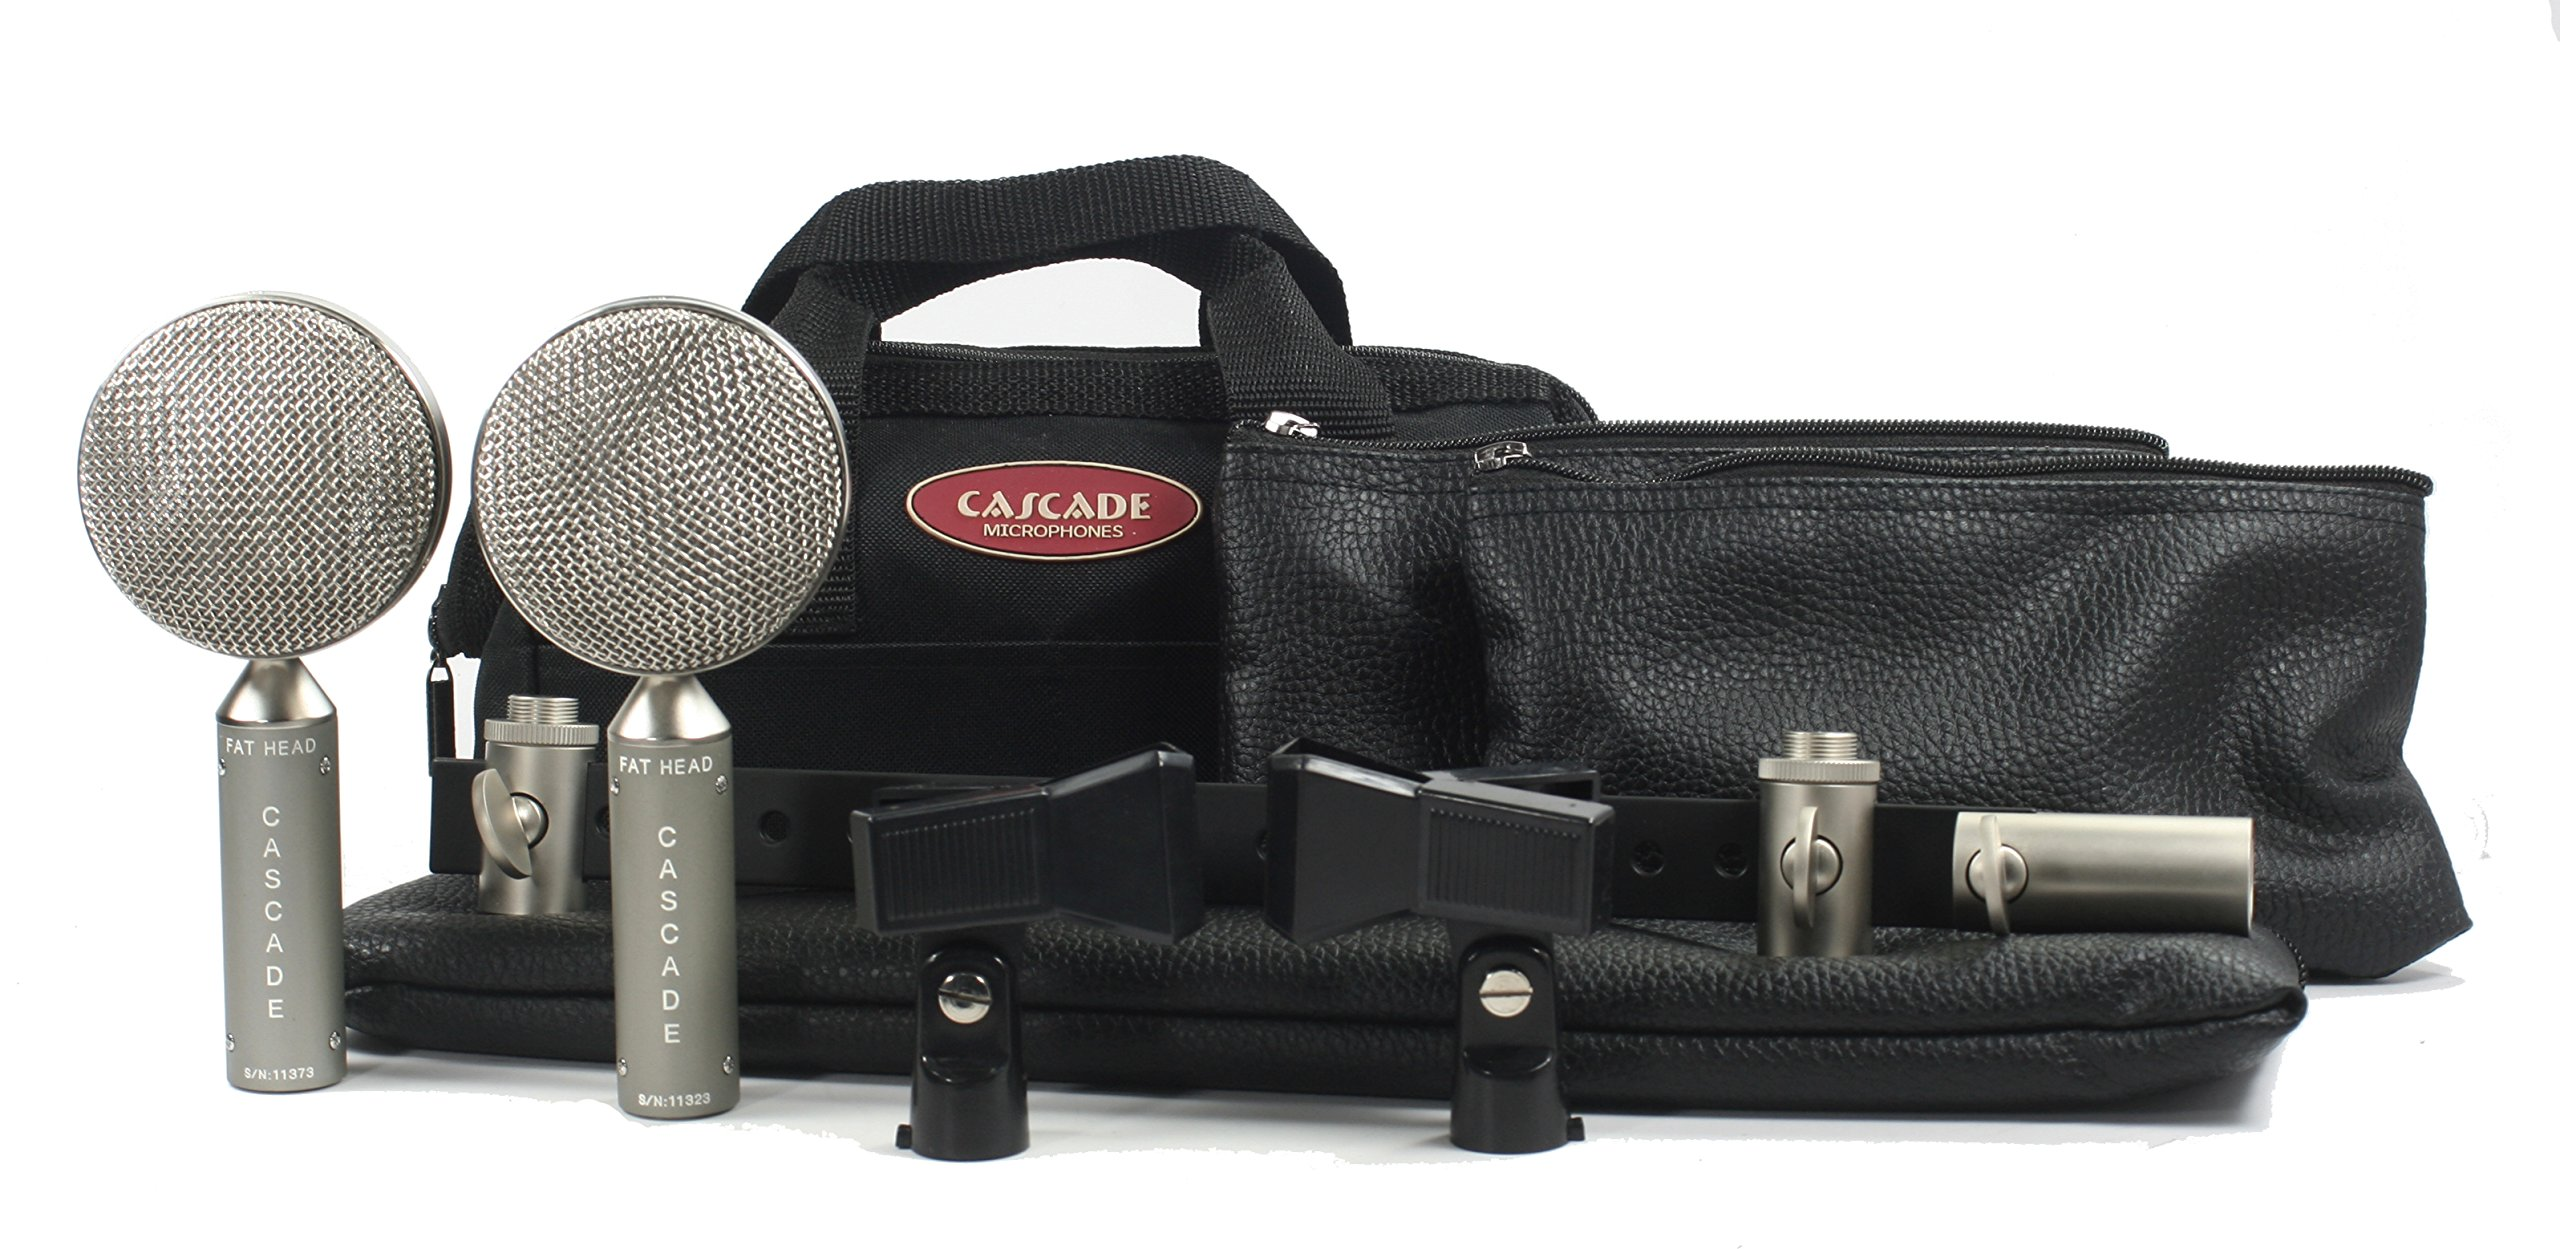 Cascade Microphones FAT HEAD BE Stereo Pair Ribbon Microphone, Grey Body/Anodized Silver Grill